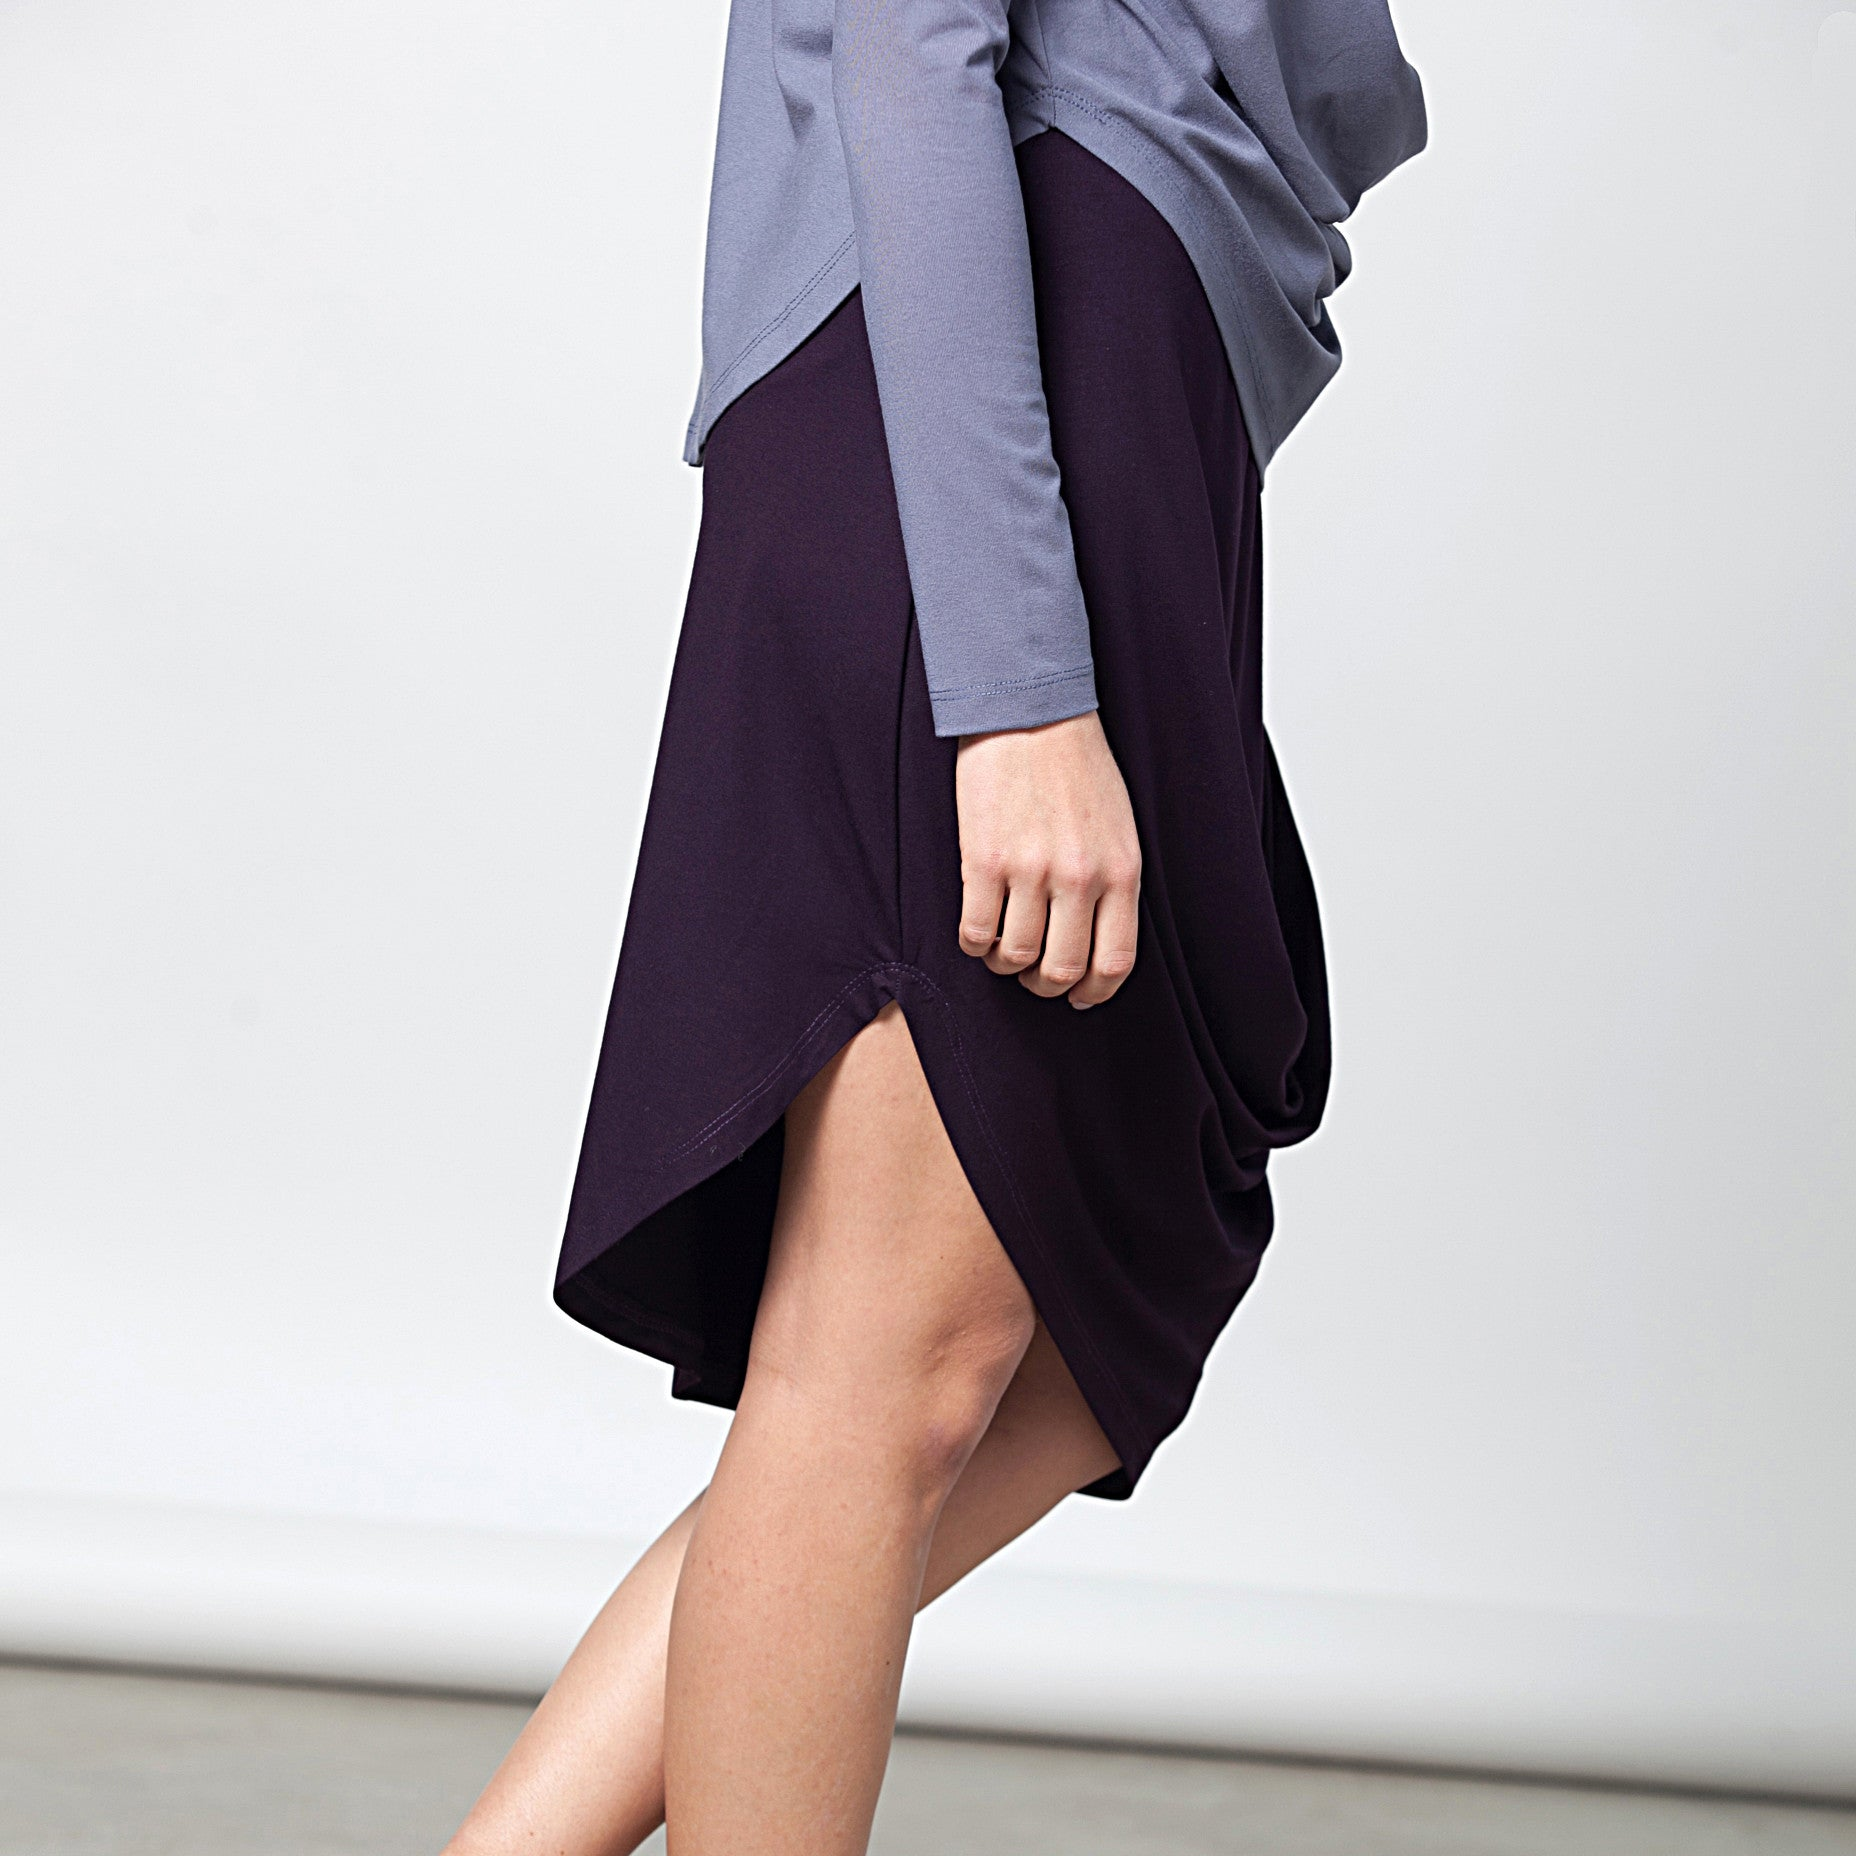 Sample Sale - Draped jersey skirt in grey stone size S-M - DuendeFashion  - 5